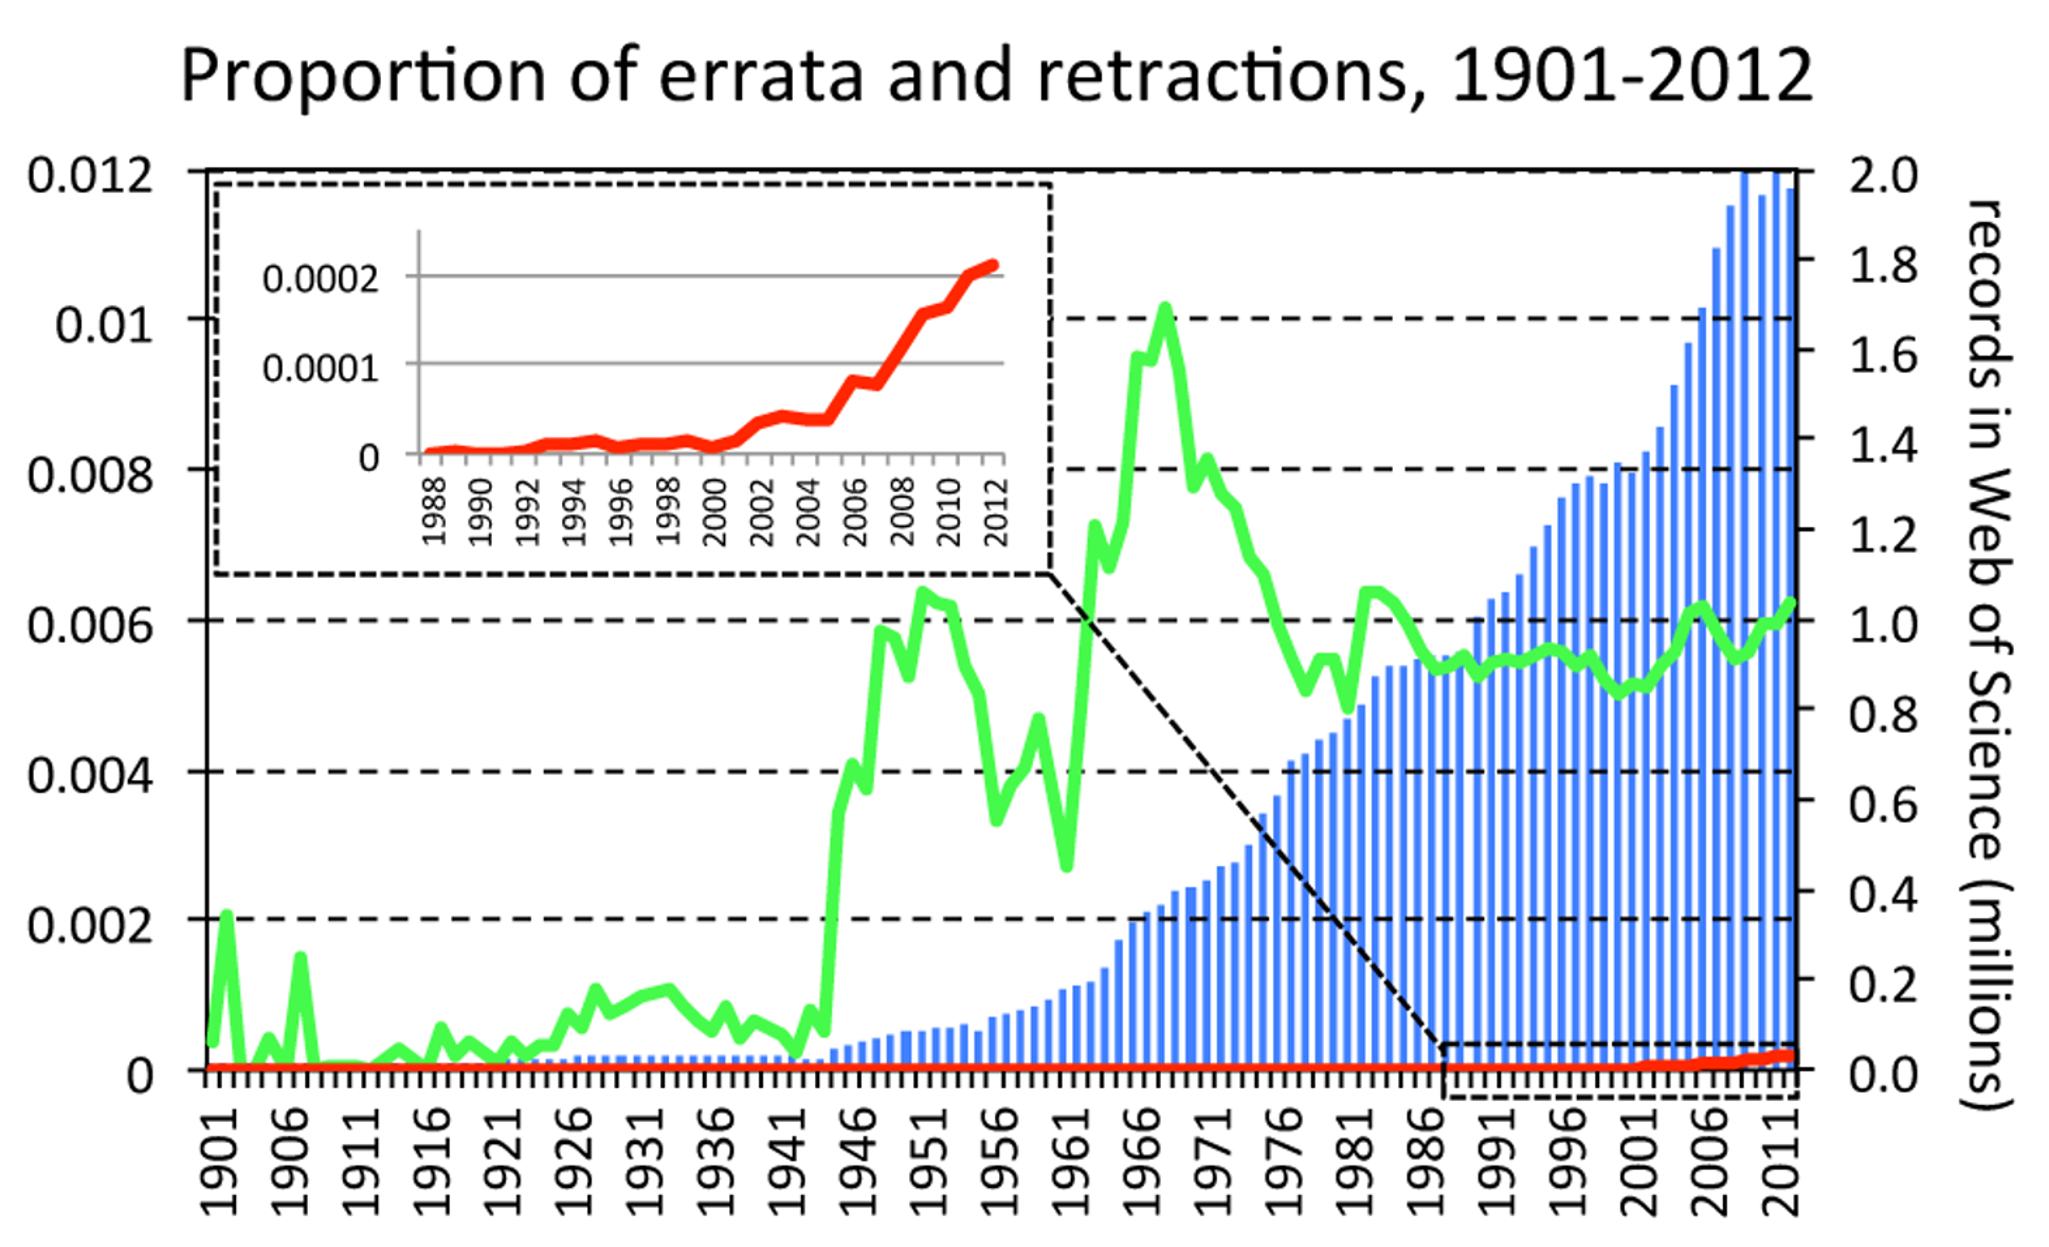 Proportion of errata and retractions amongst all records in the Web of Science database, by year.